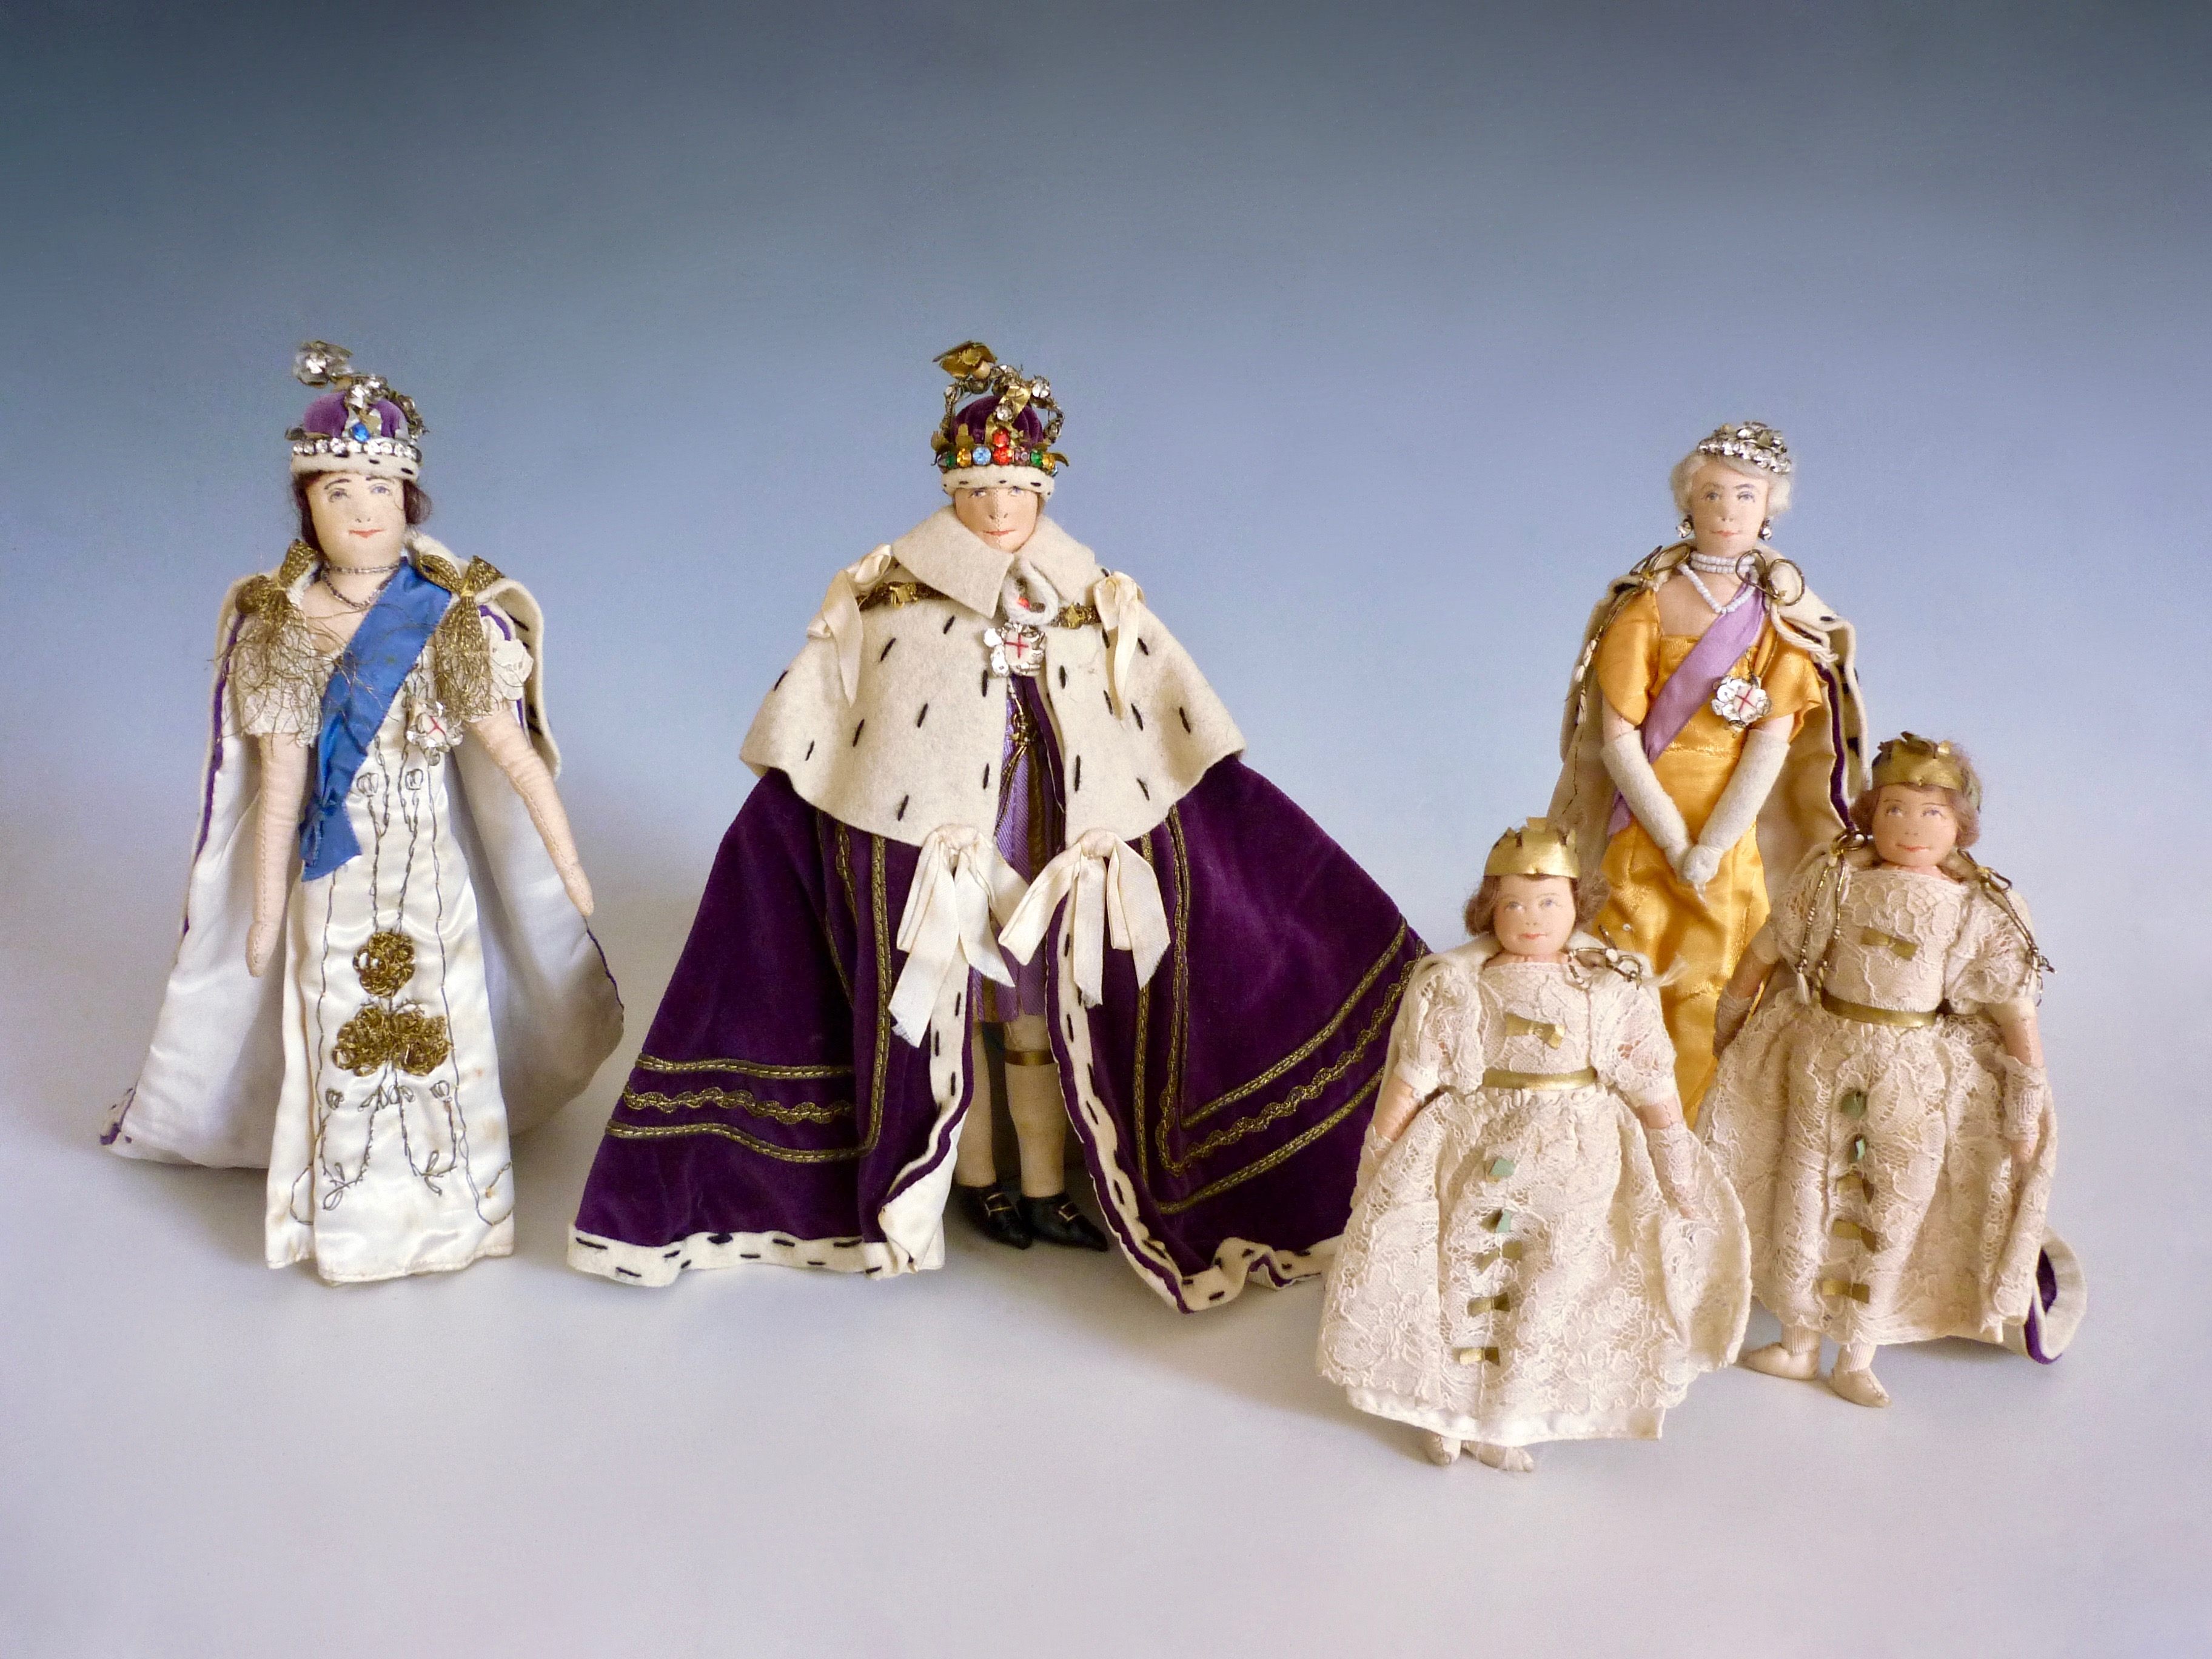 Lot 34 - A 1937 Liberty of London retailed Kimport Doll collection of the British Royal Family at the